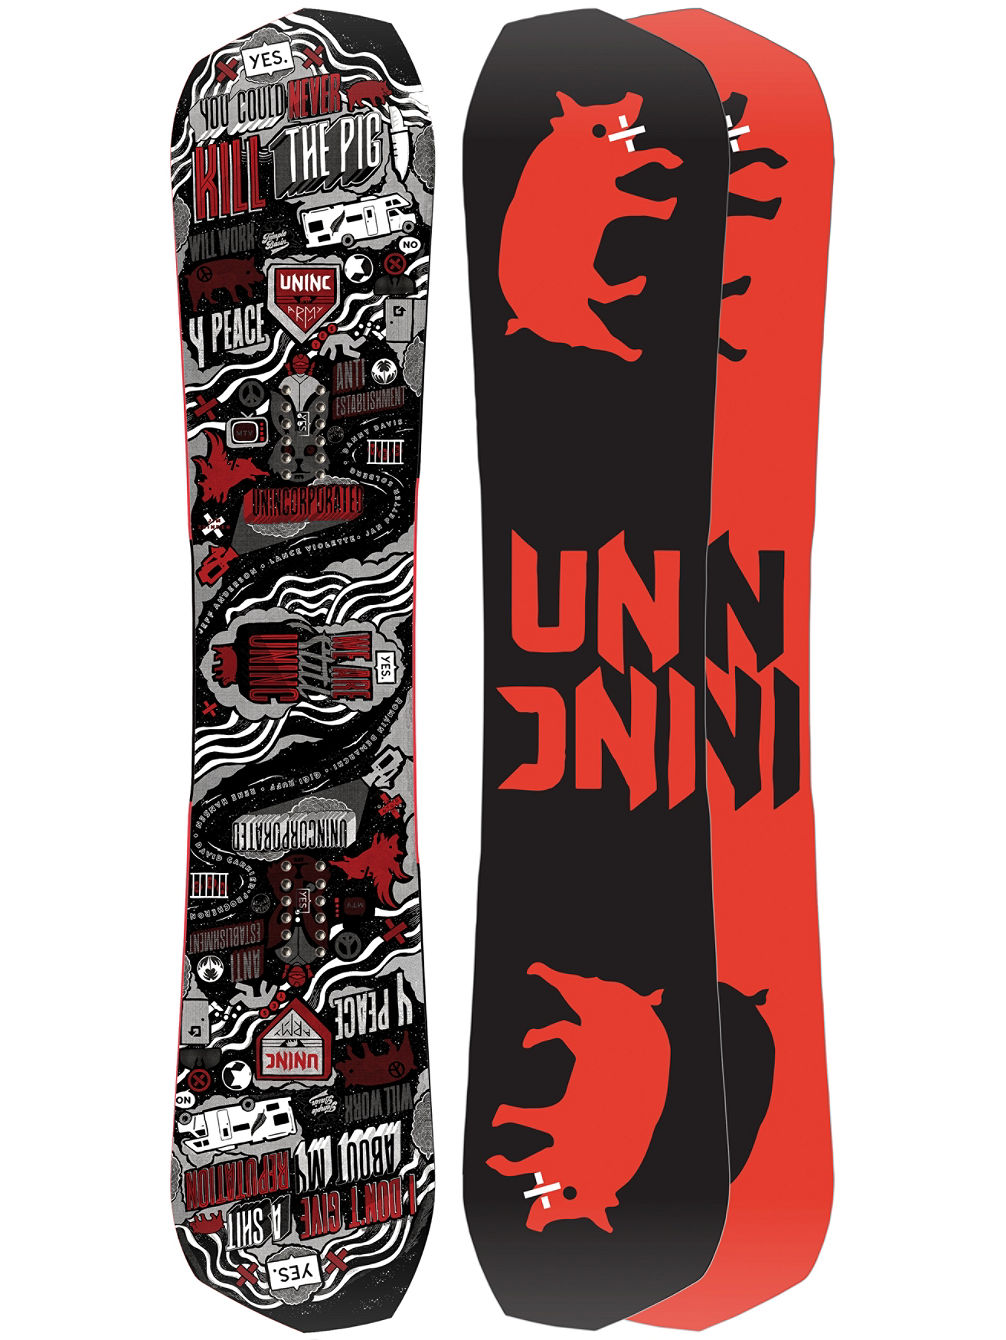 Greats Uninc 151 2020 Snowboard